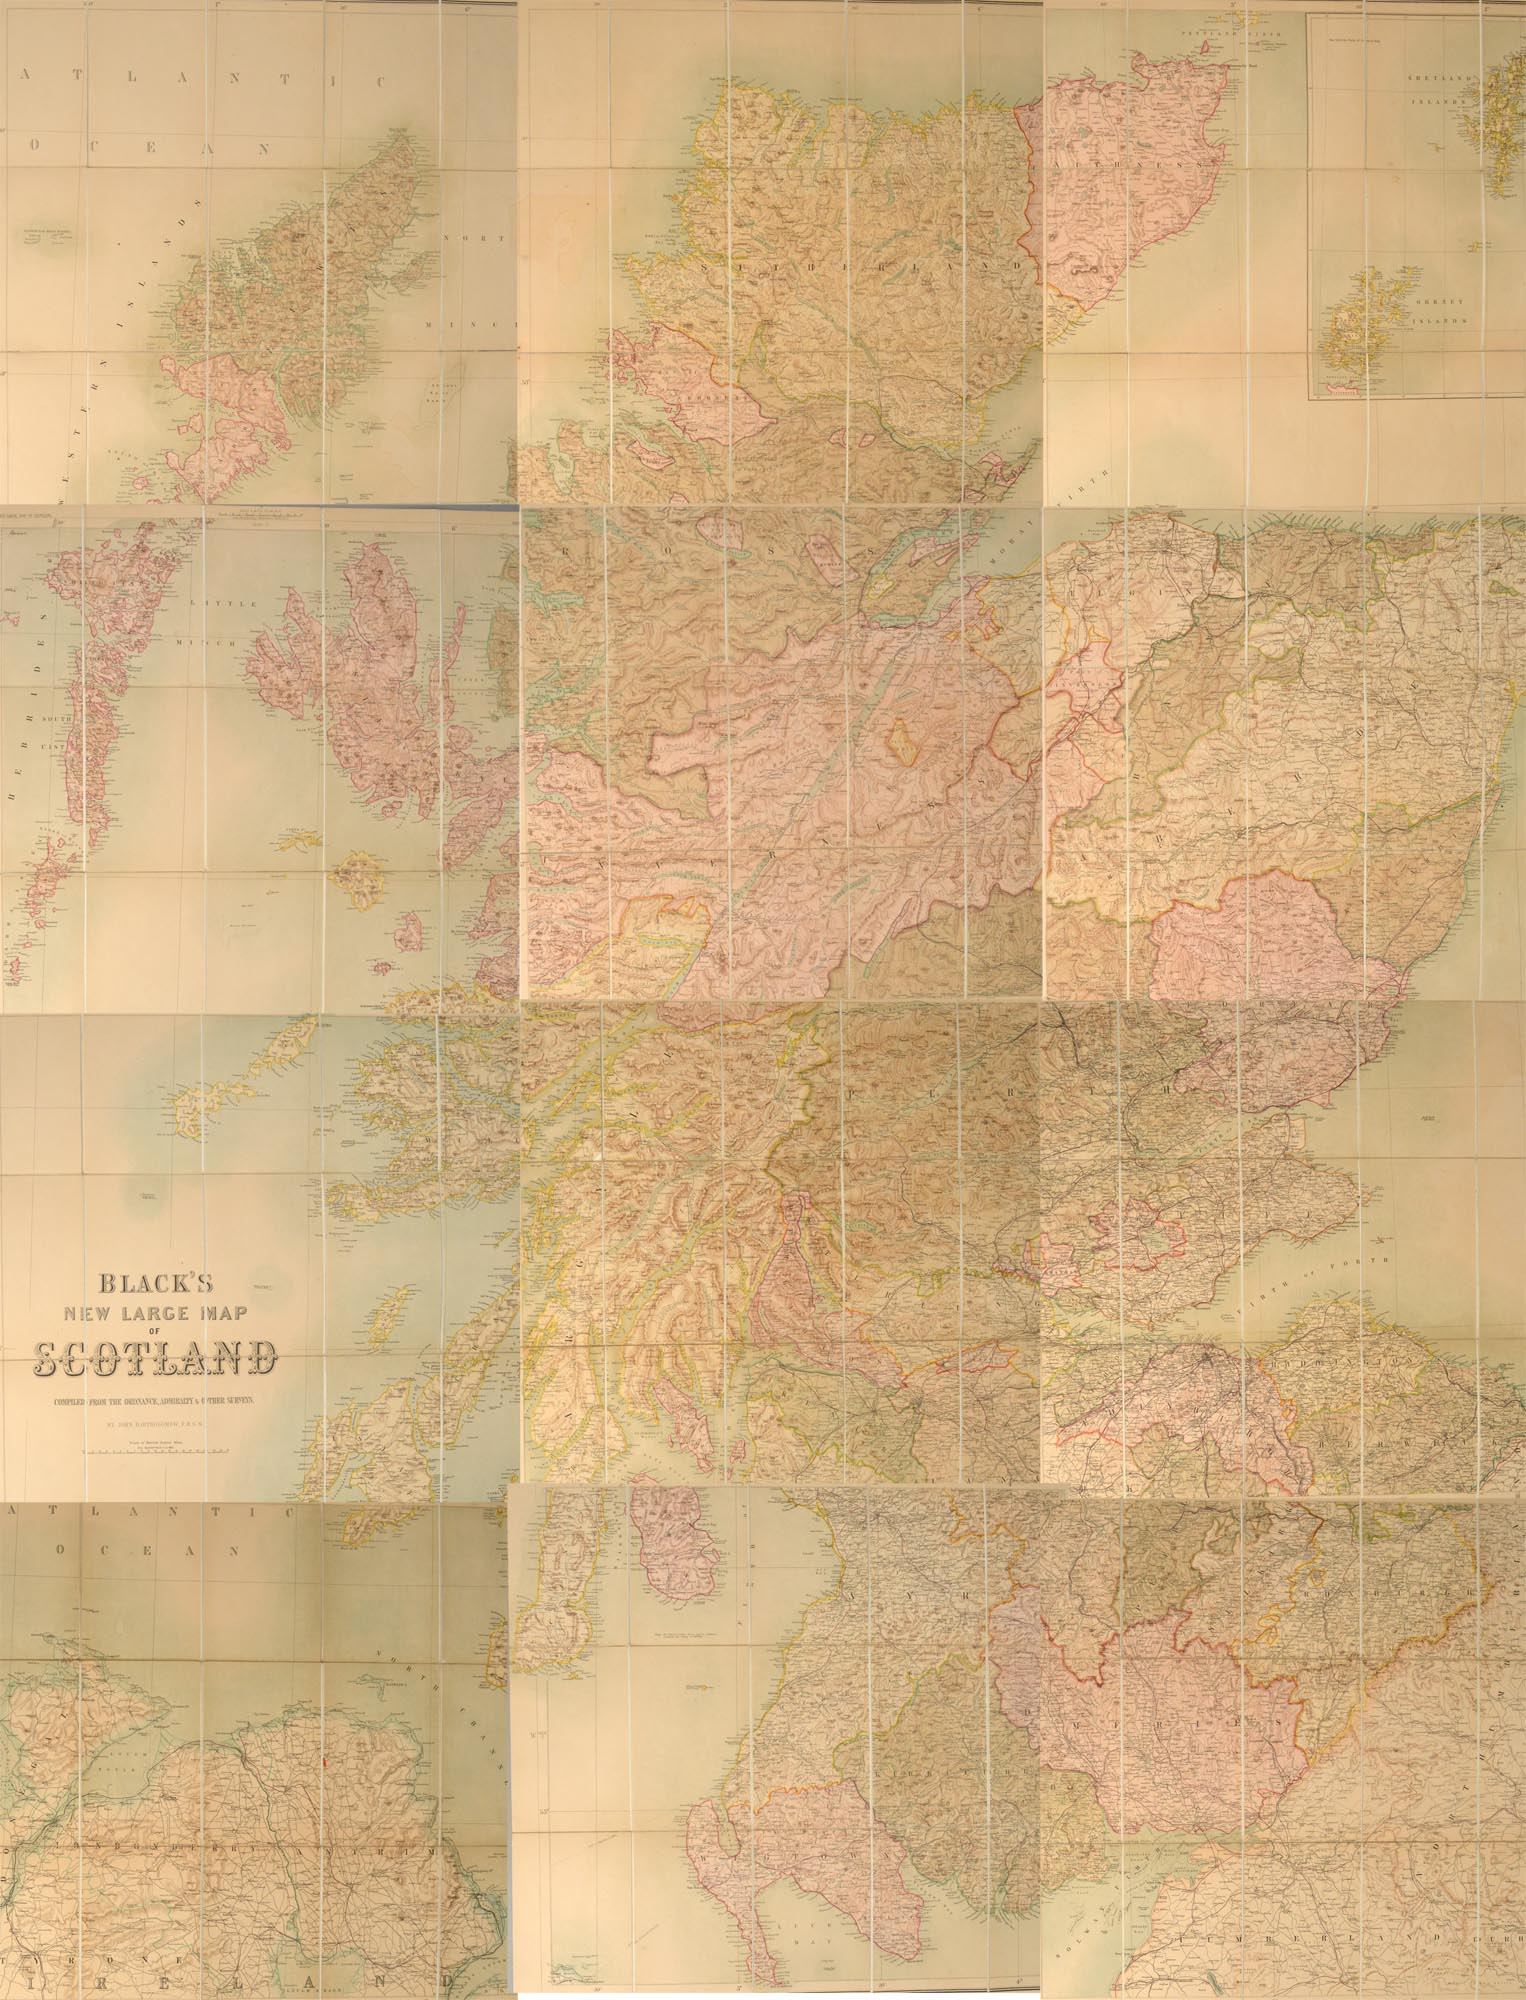 BLACK, ADAM AND CHARLES, PUBLISHERS - Black's New Large Map of Scotland